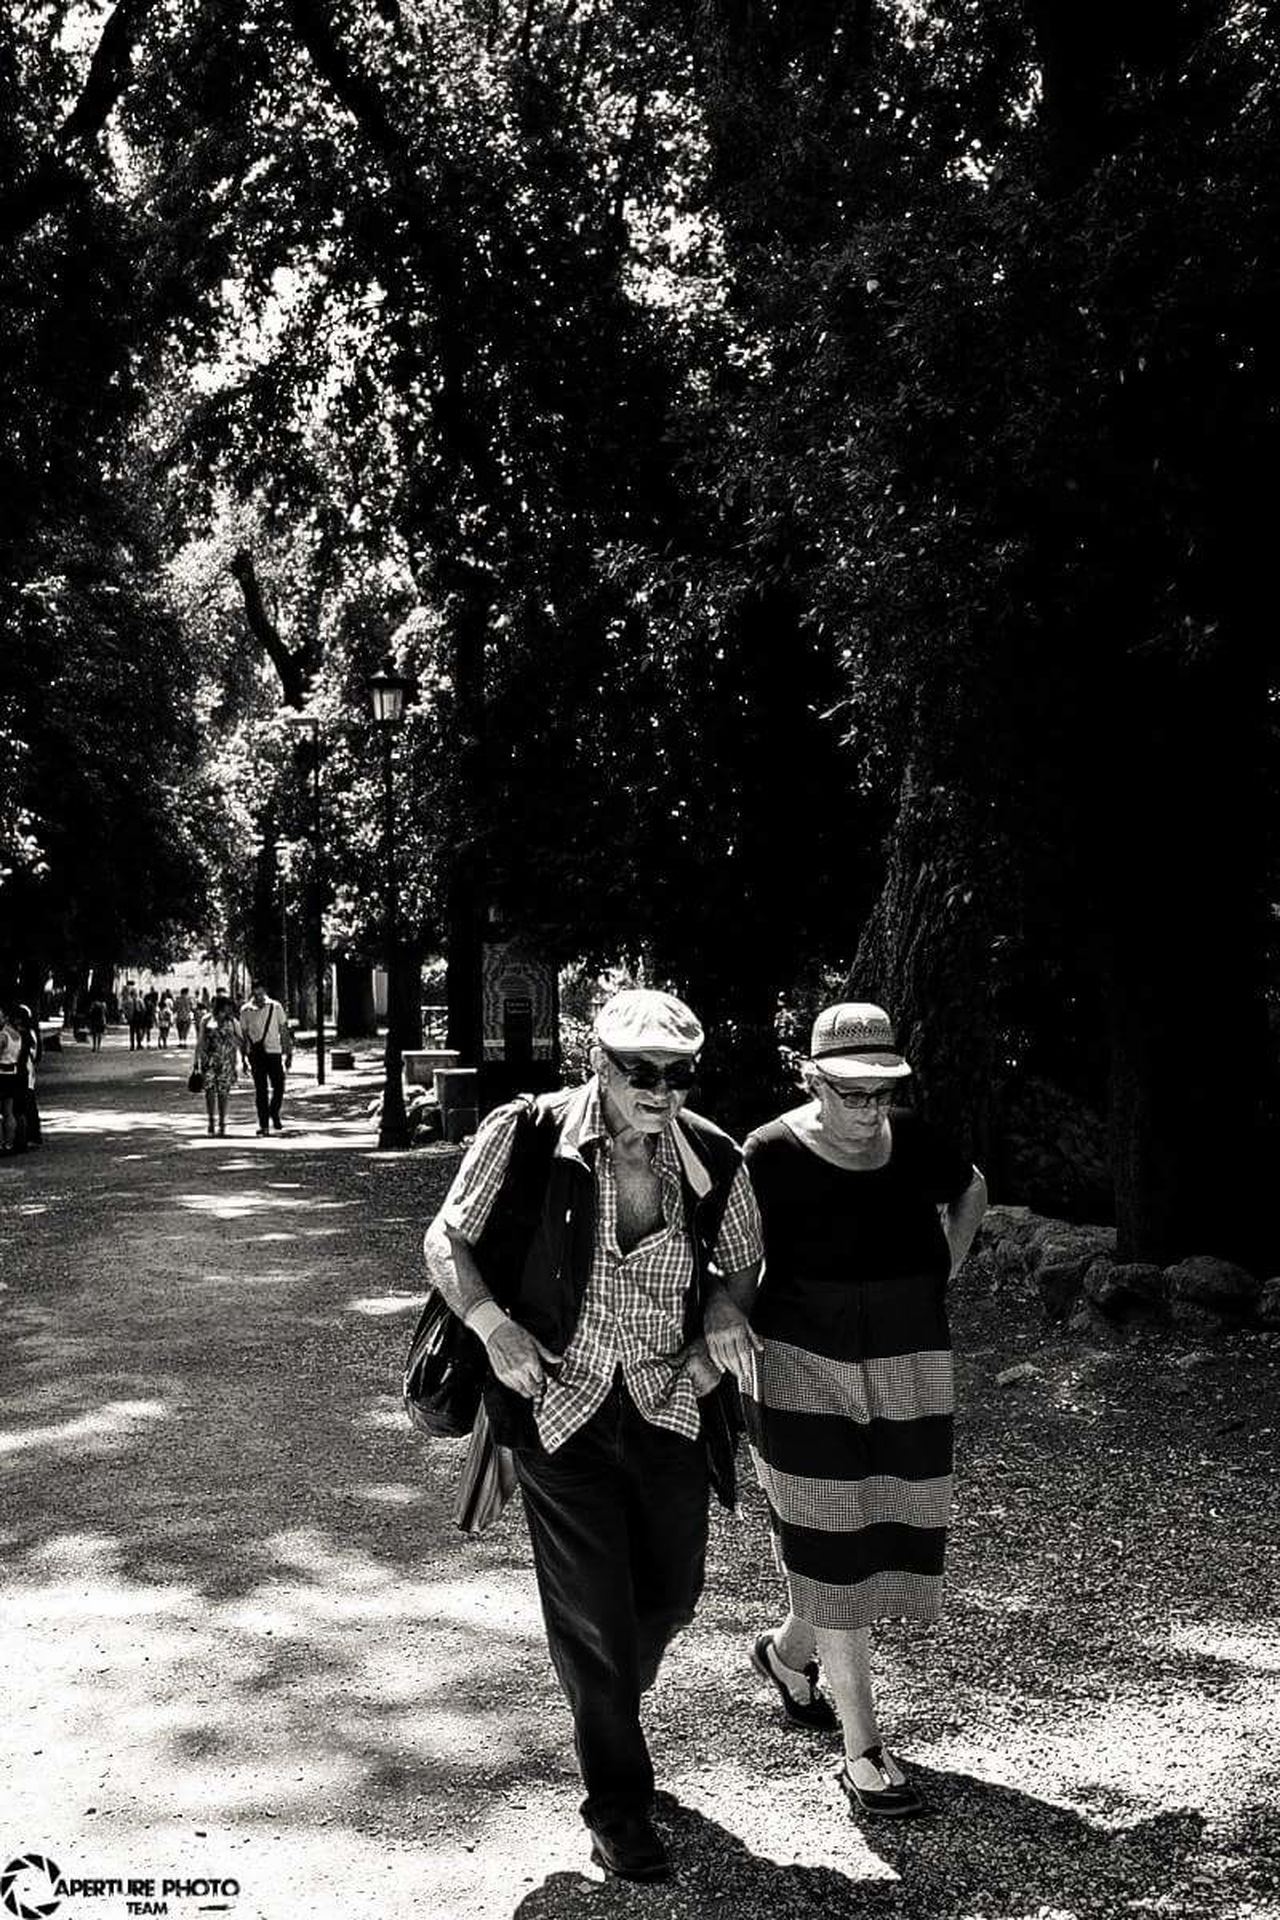 Vintage Style Street Photography First Eyeem Photo Streetphotography Black And White EyeEm Best Shots - Black + White Monochrome EyeEm Best Edits EyeEm Best Shots Villa Borghese Park Rome Italy EyeEm Walking